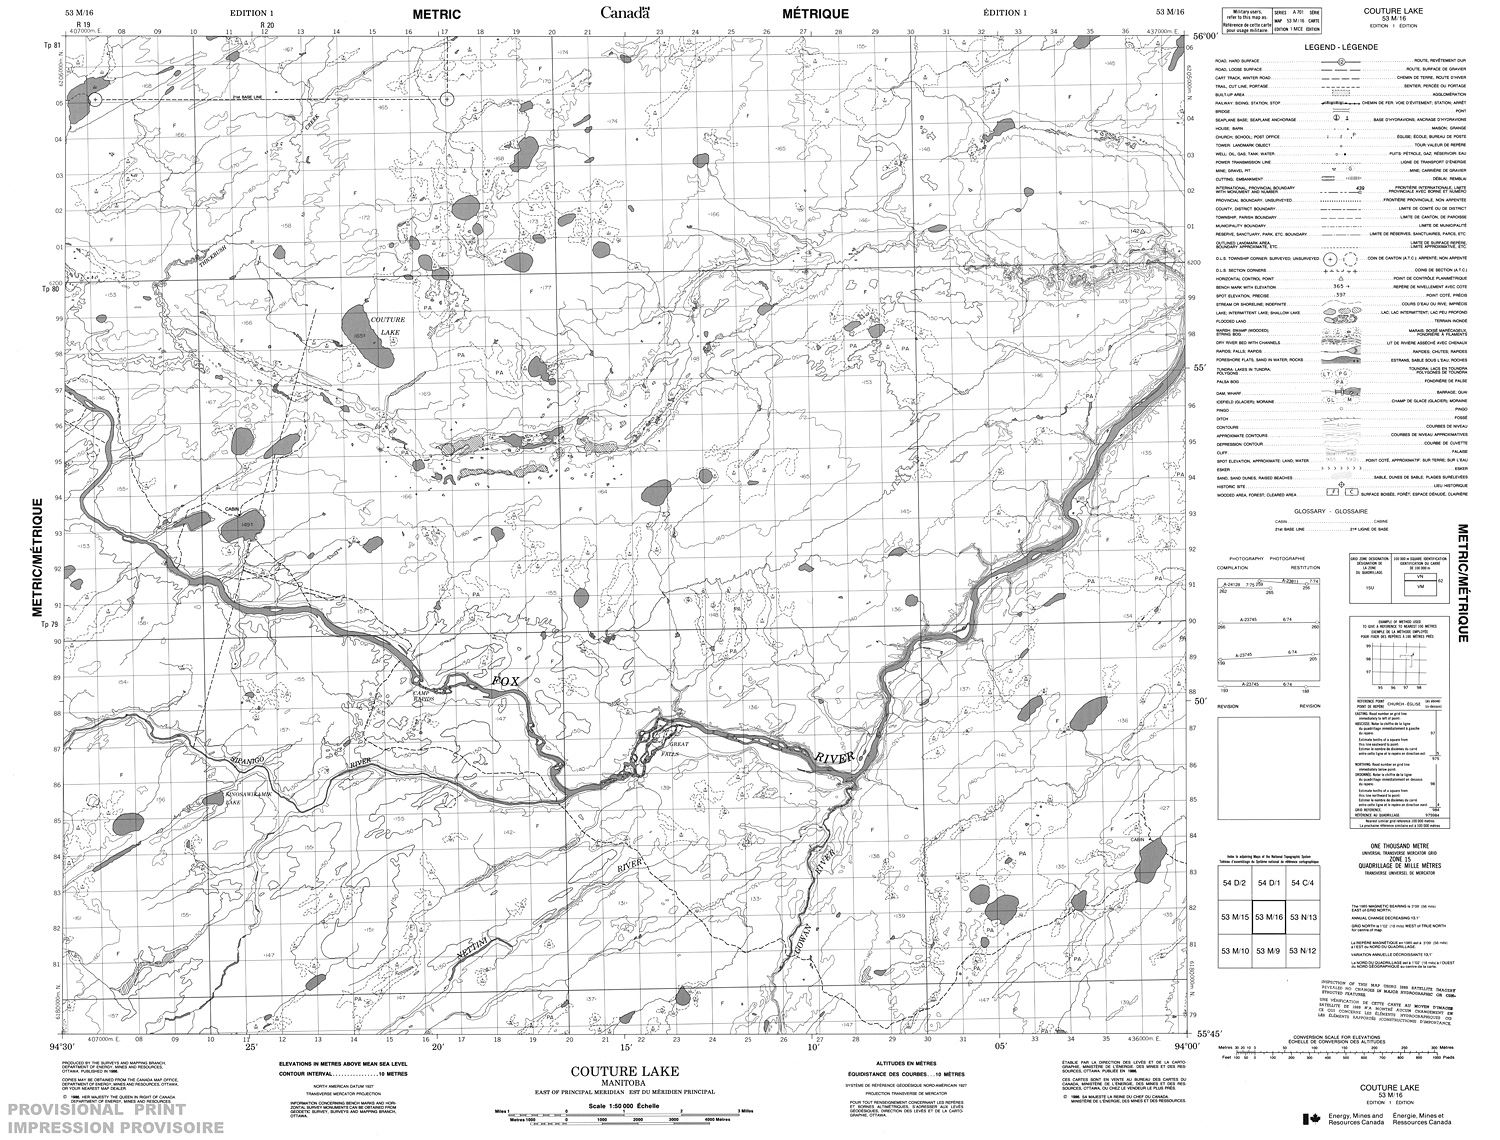 053m16 Couture Lake Topographic Map